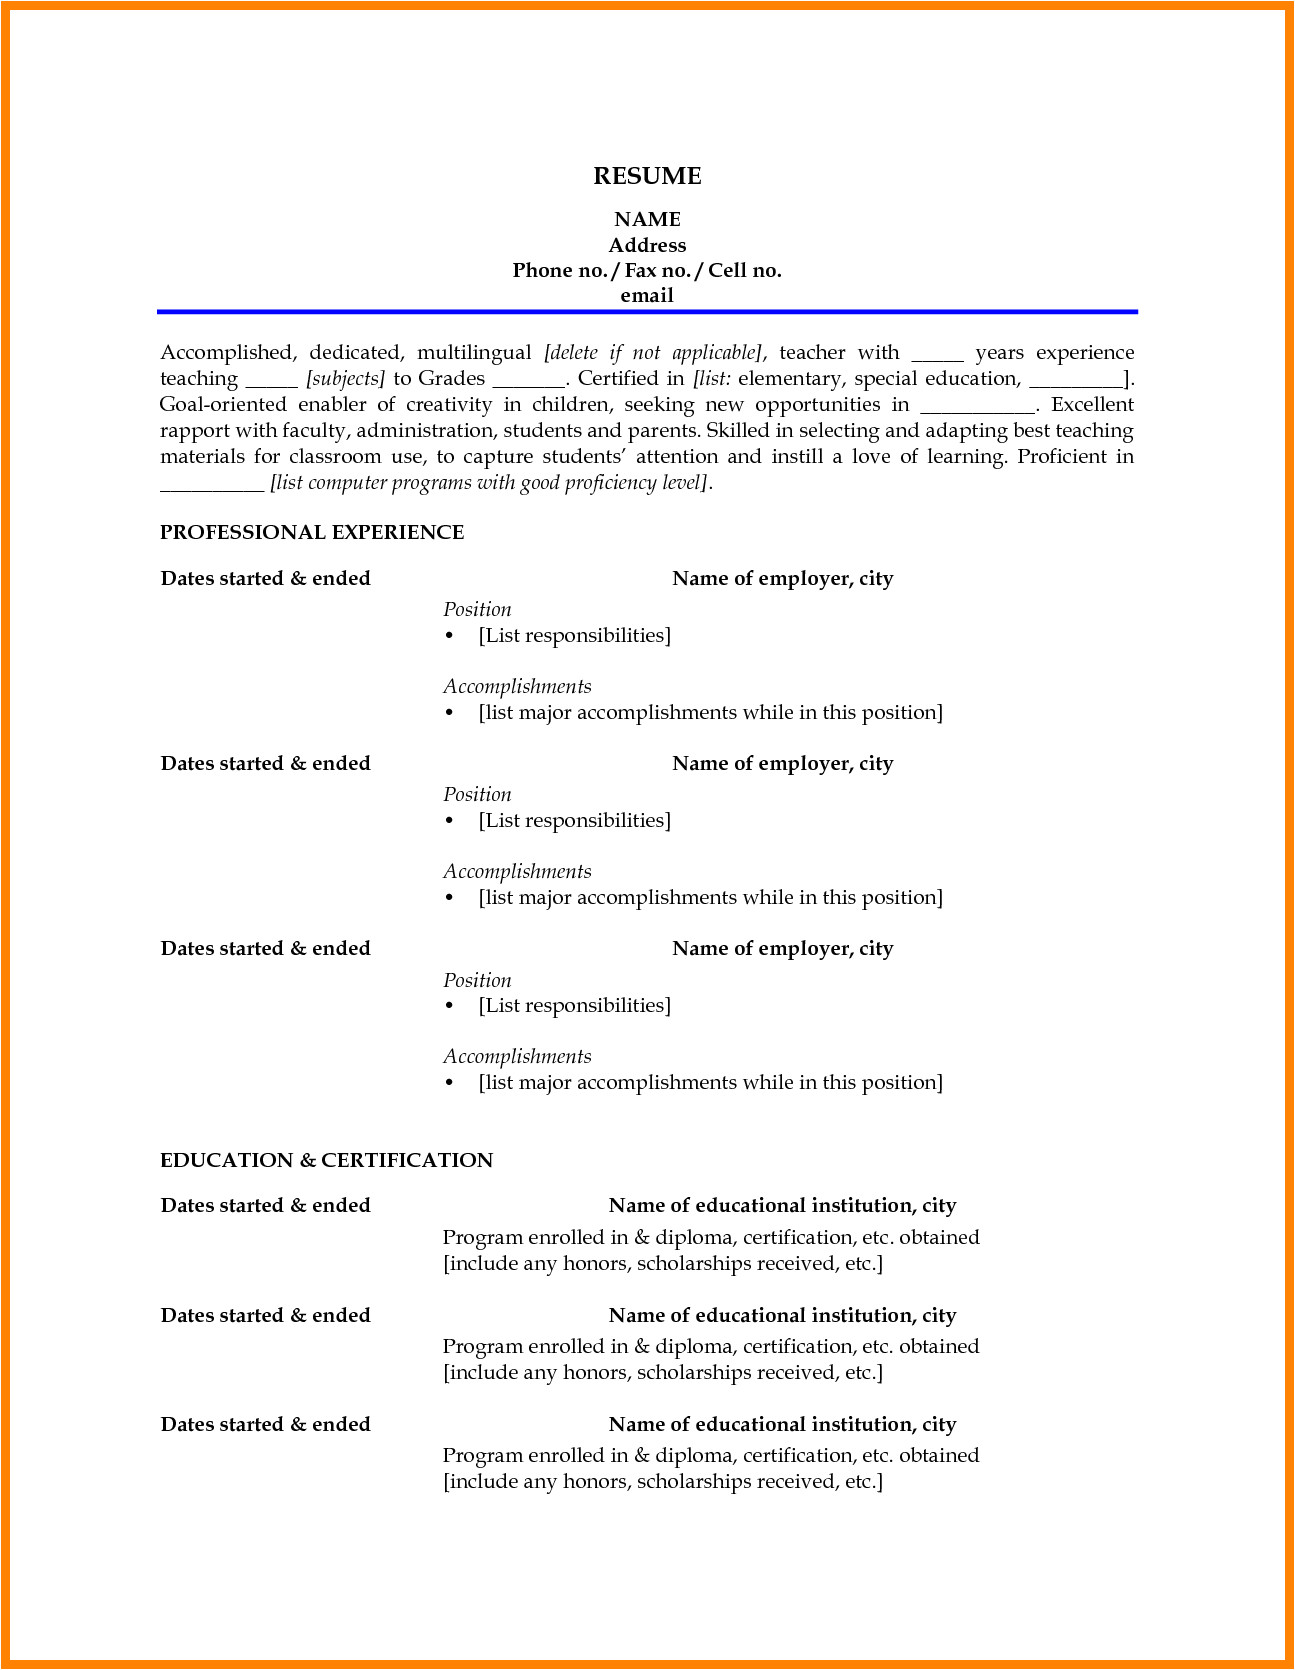 Sample Resume Of Teacher Applicant Resume for Elementary Teacher Applicant Bongdaao Com